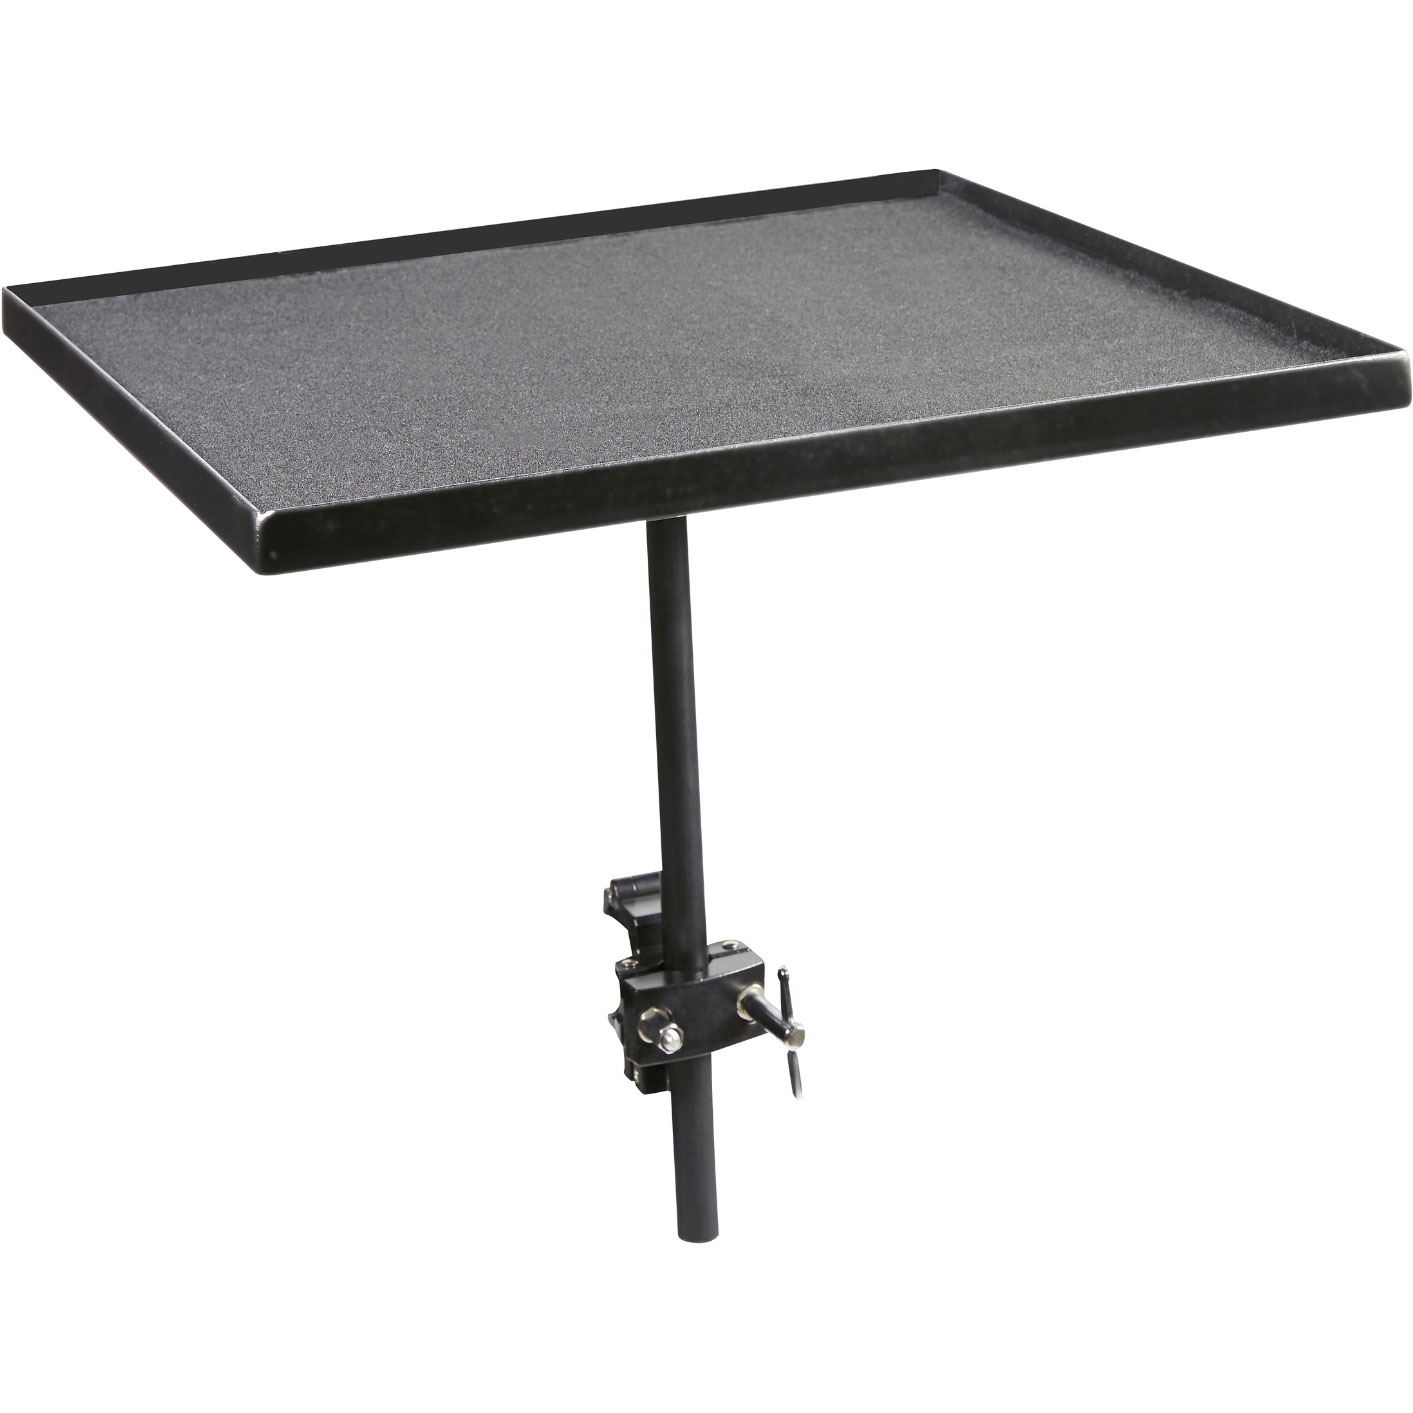 Titan Mallet Table with Clamp